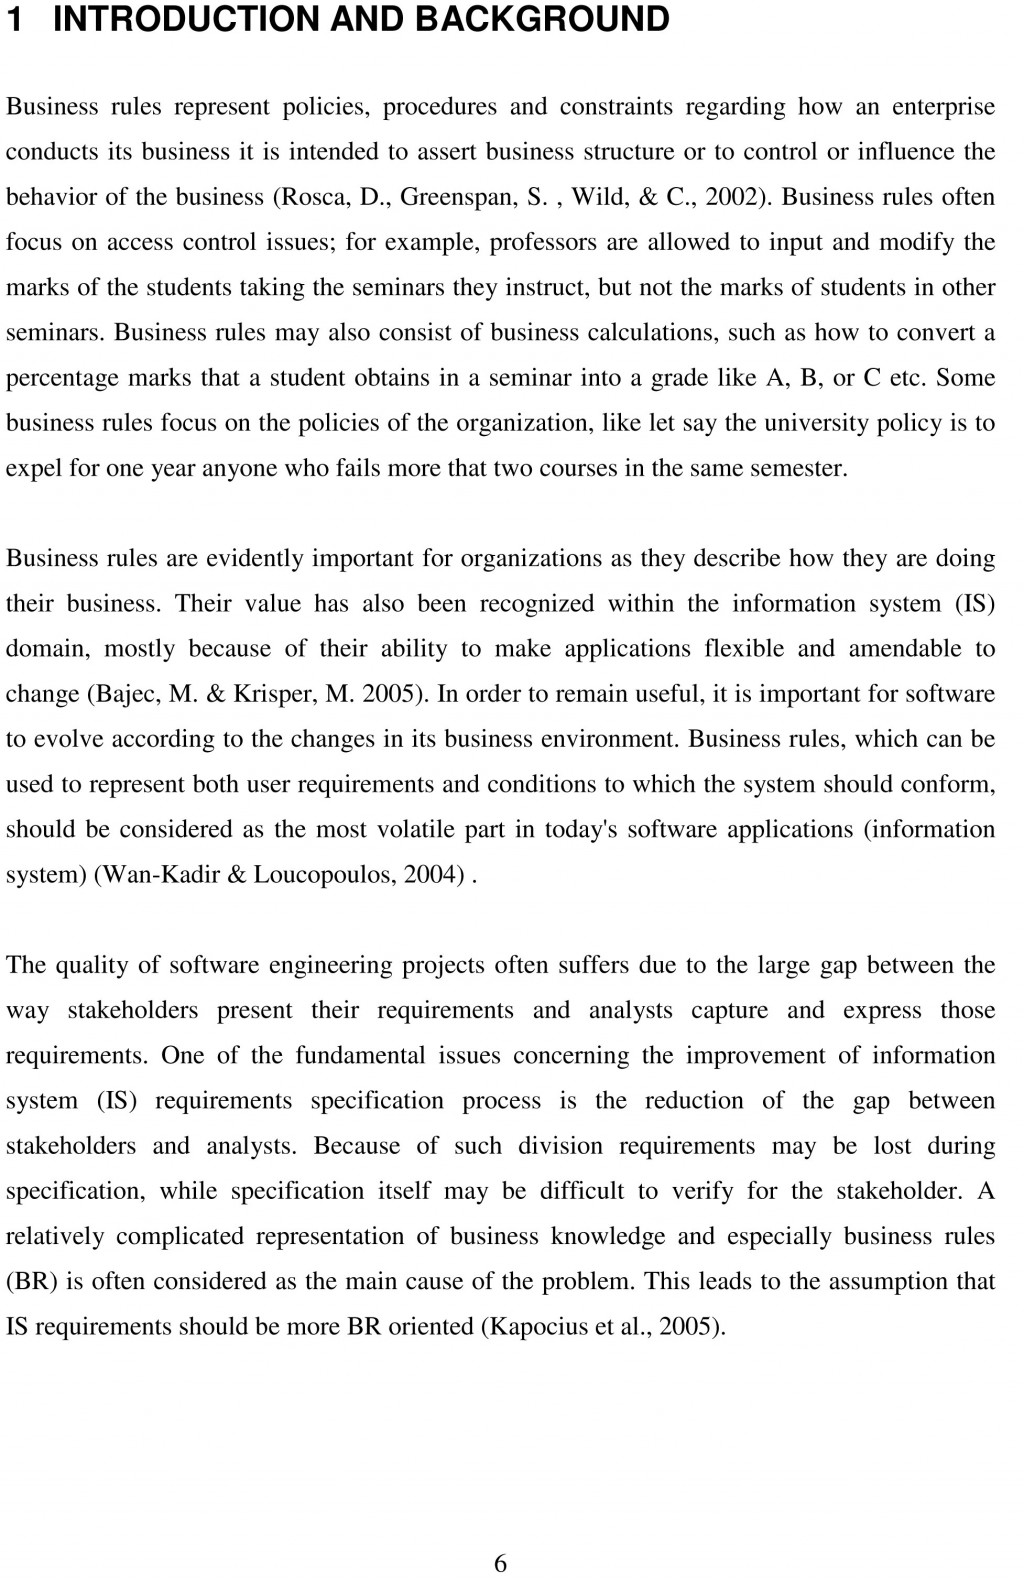 021 Thesis Free Sample1 Research Paper Good Topics For World History Impressive Papers Large